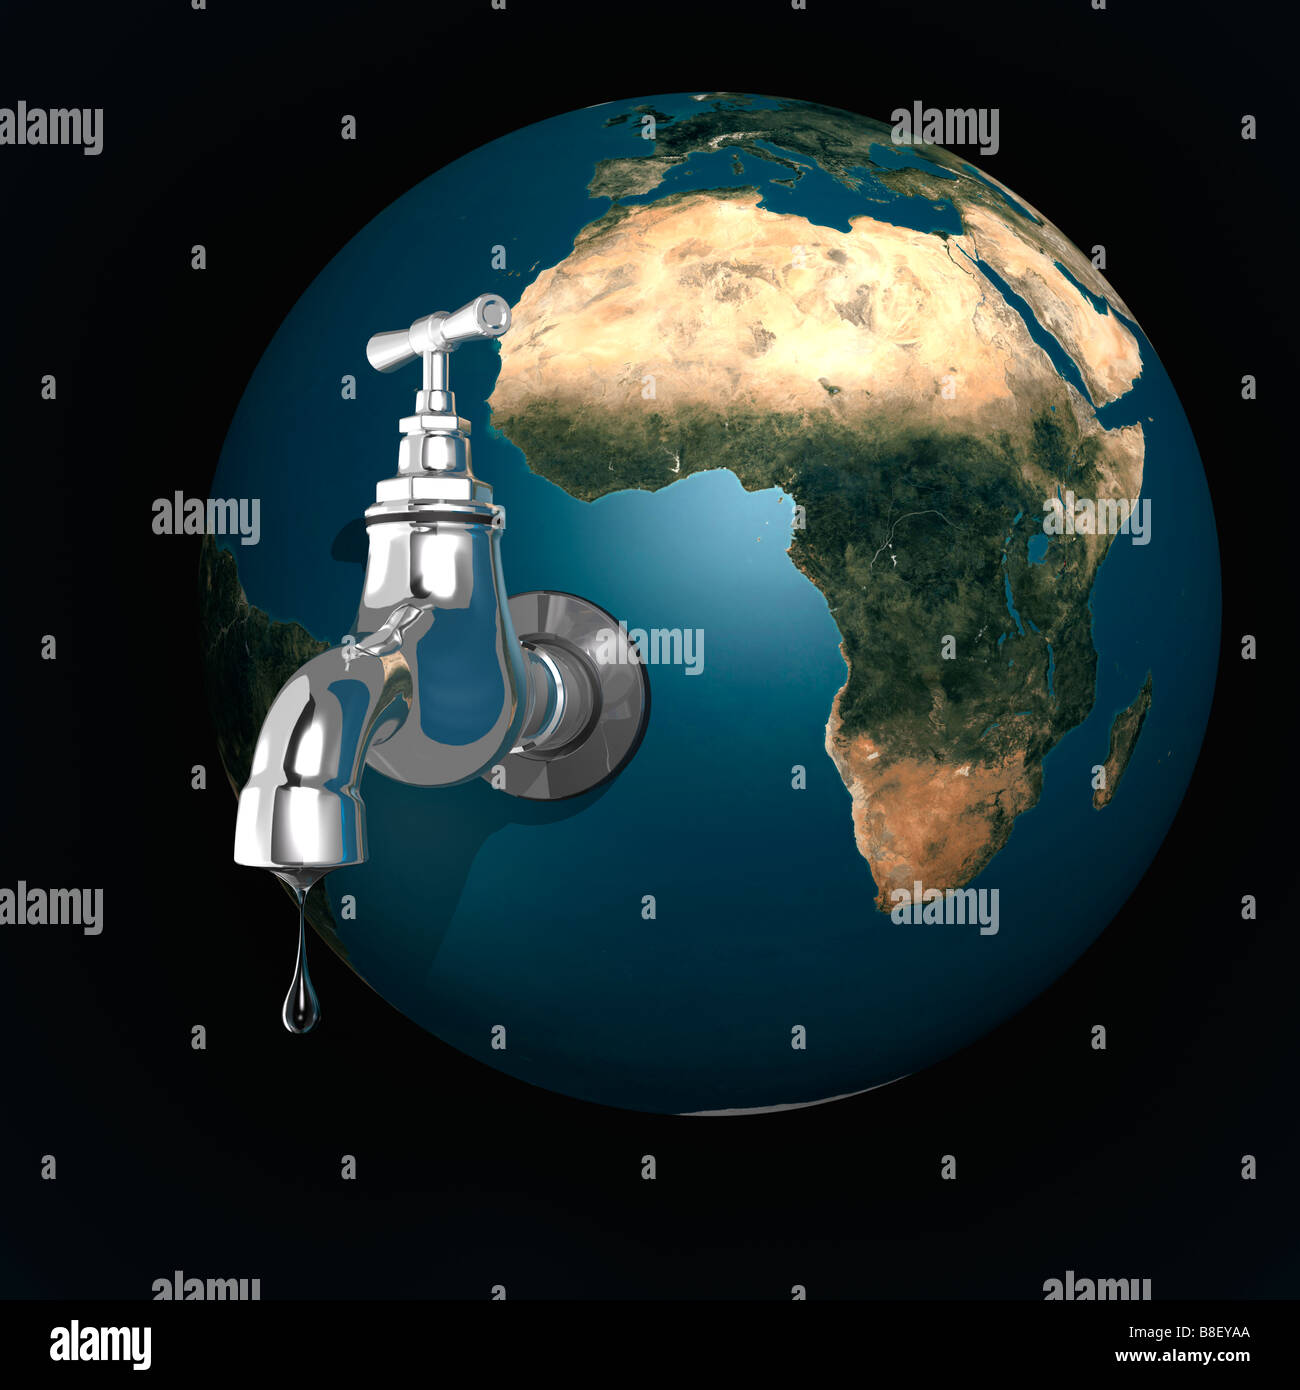 Water dripping from the Earth - Stock Image